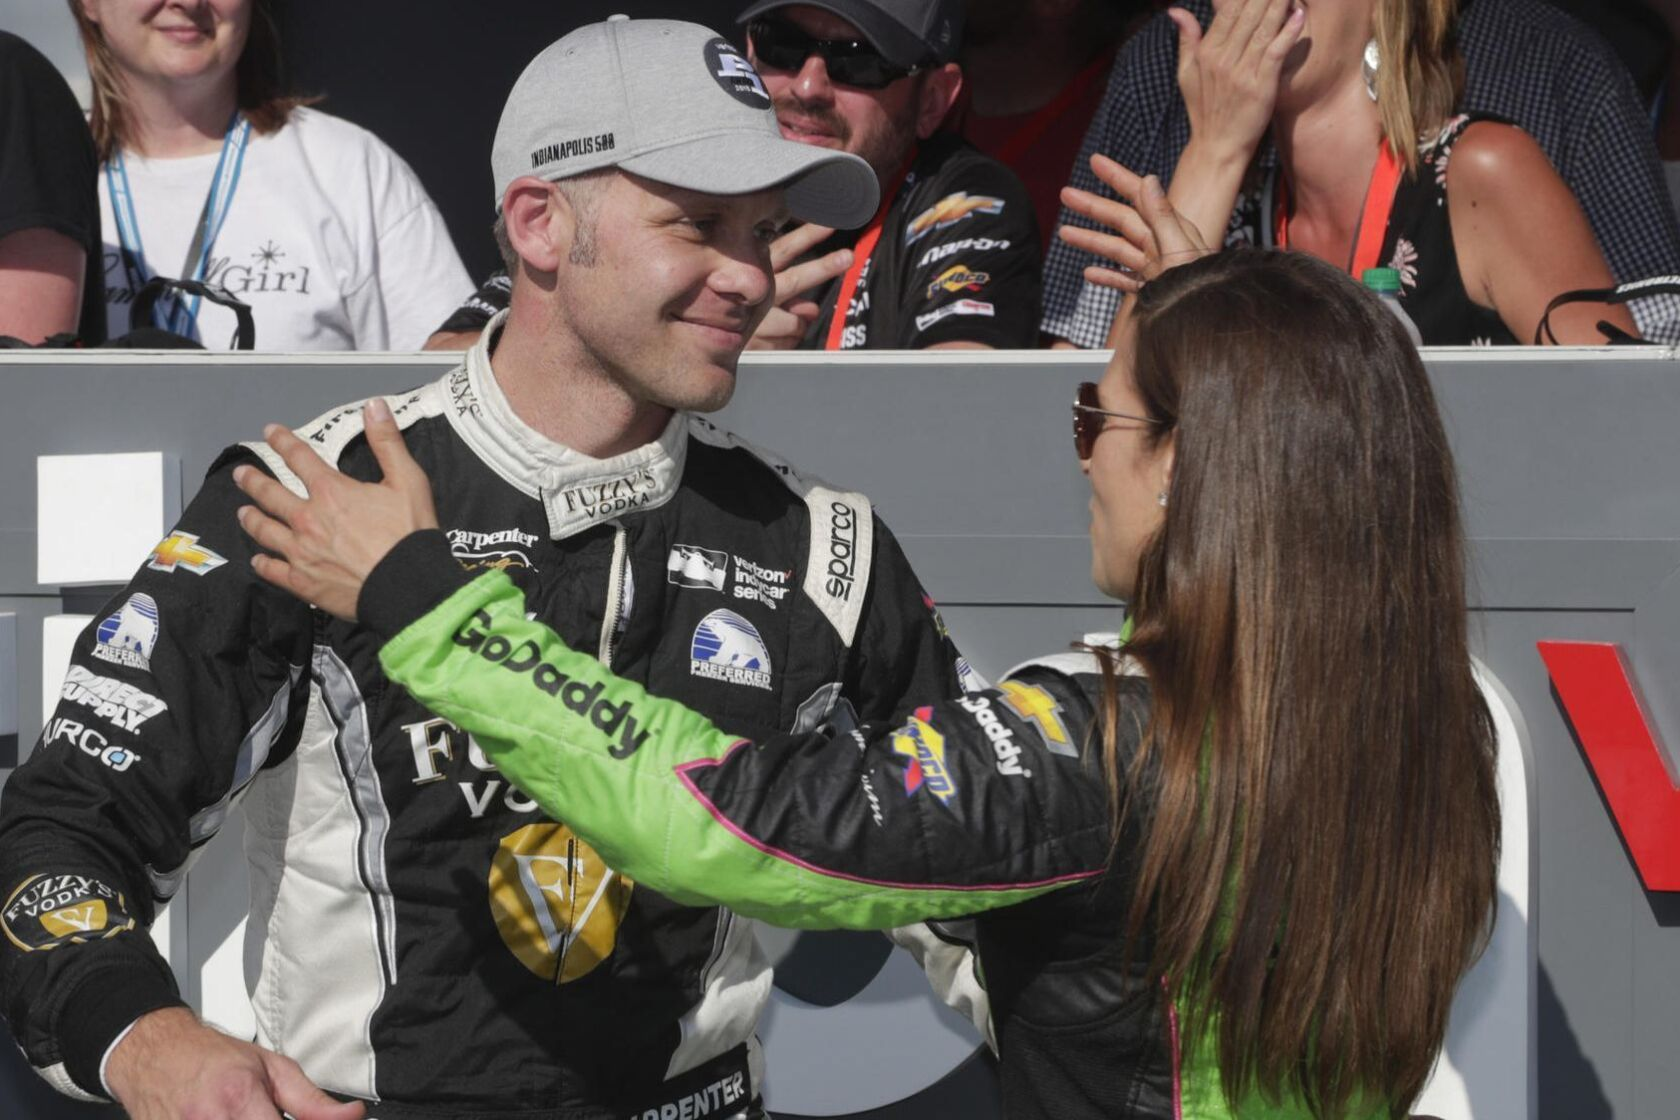 Danica Patricks Final Race At Indy 500 Comes With A Hotly